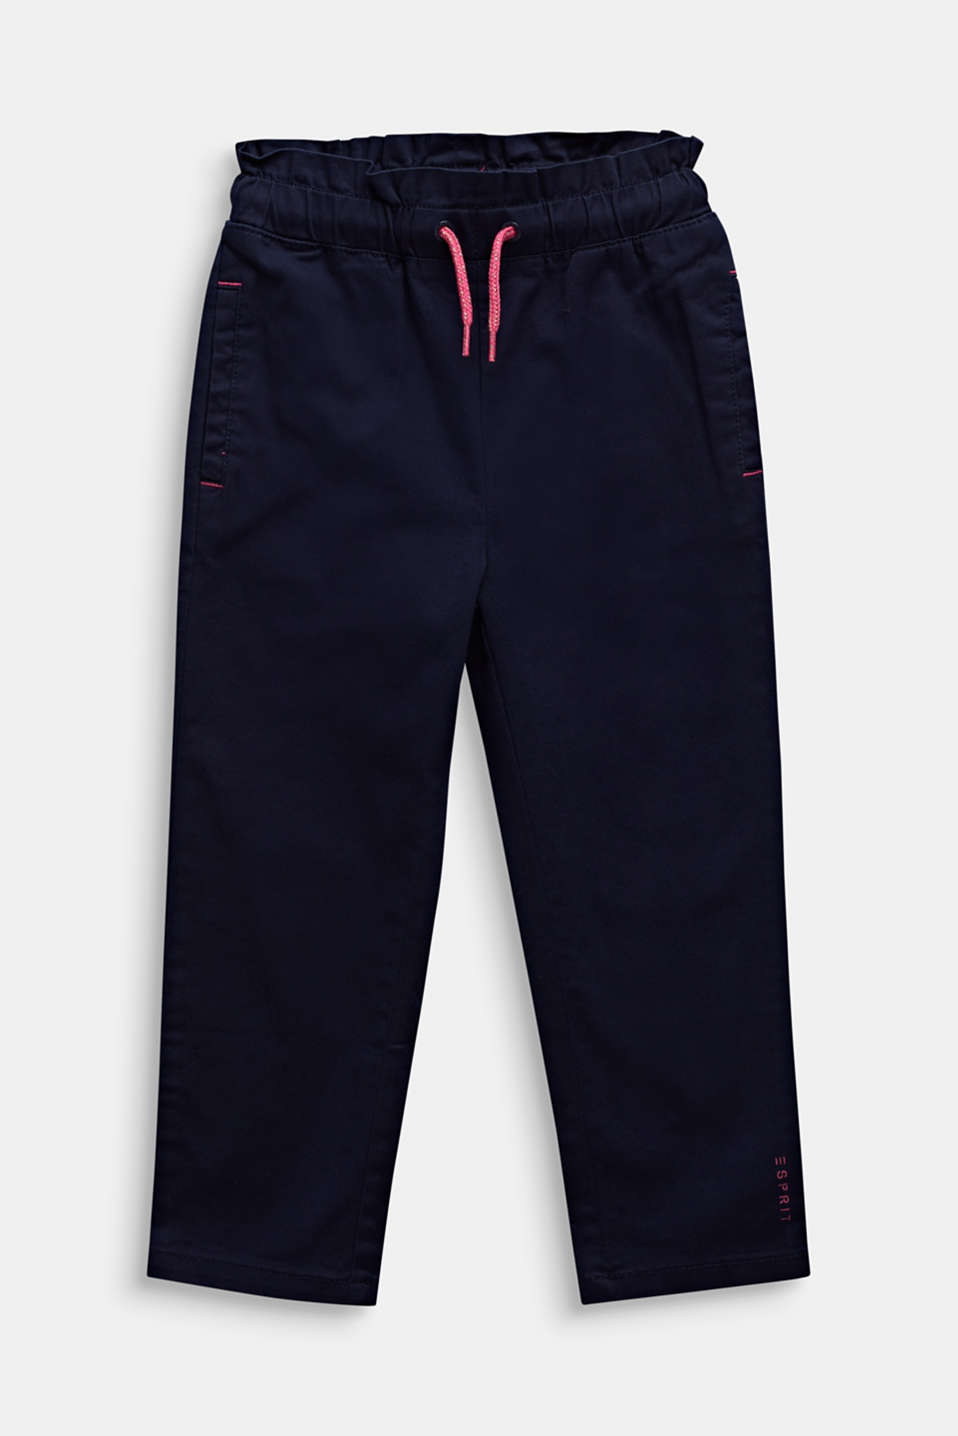 Tracksuit bottom-style trousers made of stretch cotton